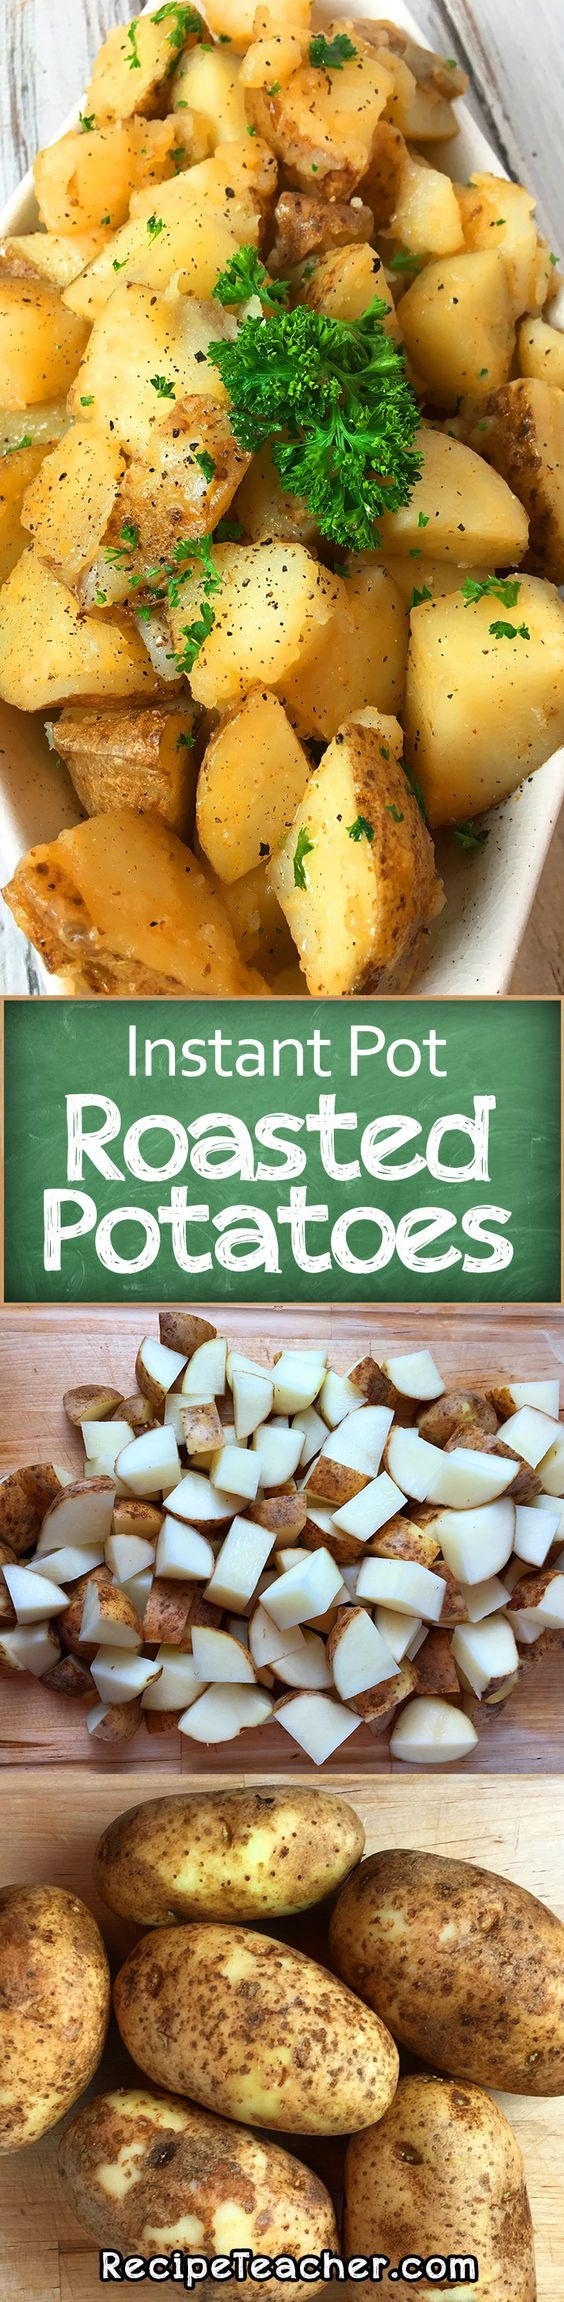 Instant Pot Roasted Potatoes. Awesome and easy recipe for delicious potatoes. #instantpot #roasted #potatoes